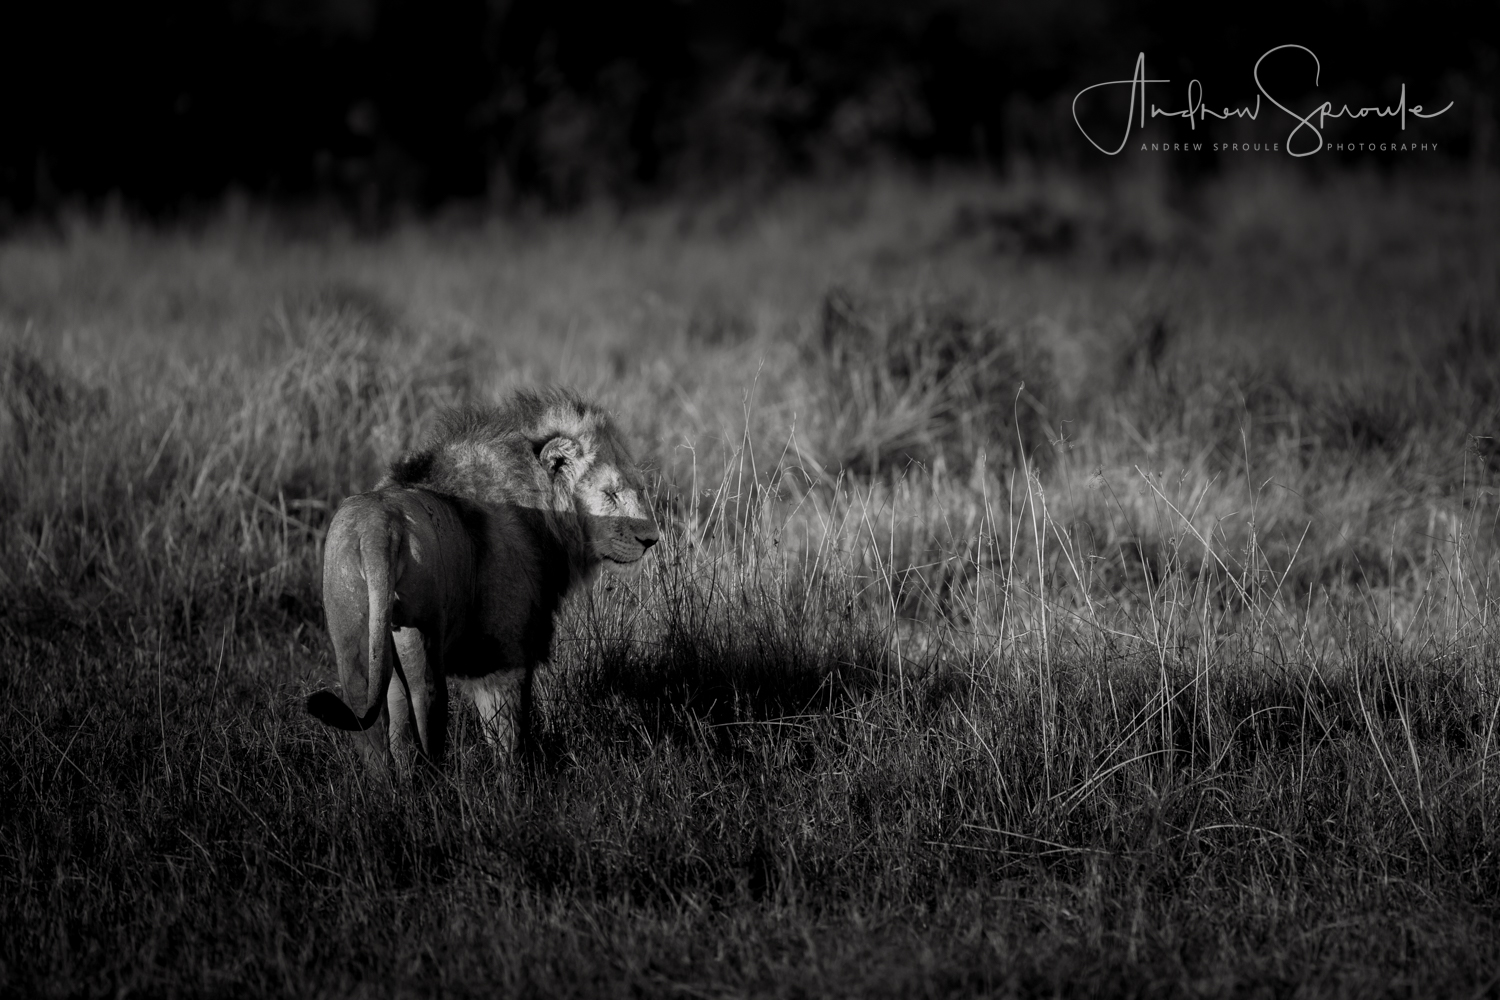 Andrew Sproule | Wildlife and Adventure Photographer | Pride Male Lion, Moremi Game Reserve, Botswana, Africa | Eternal Collection | Image © Andrew Sproule